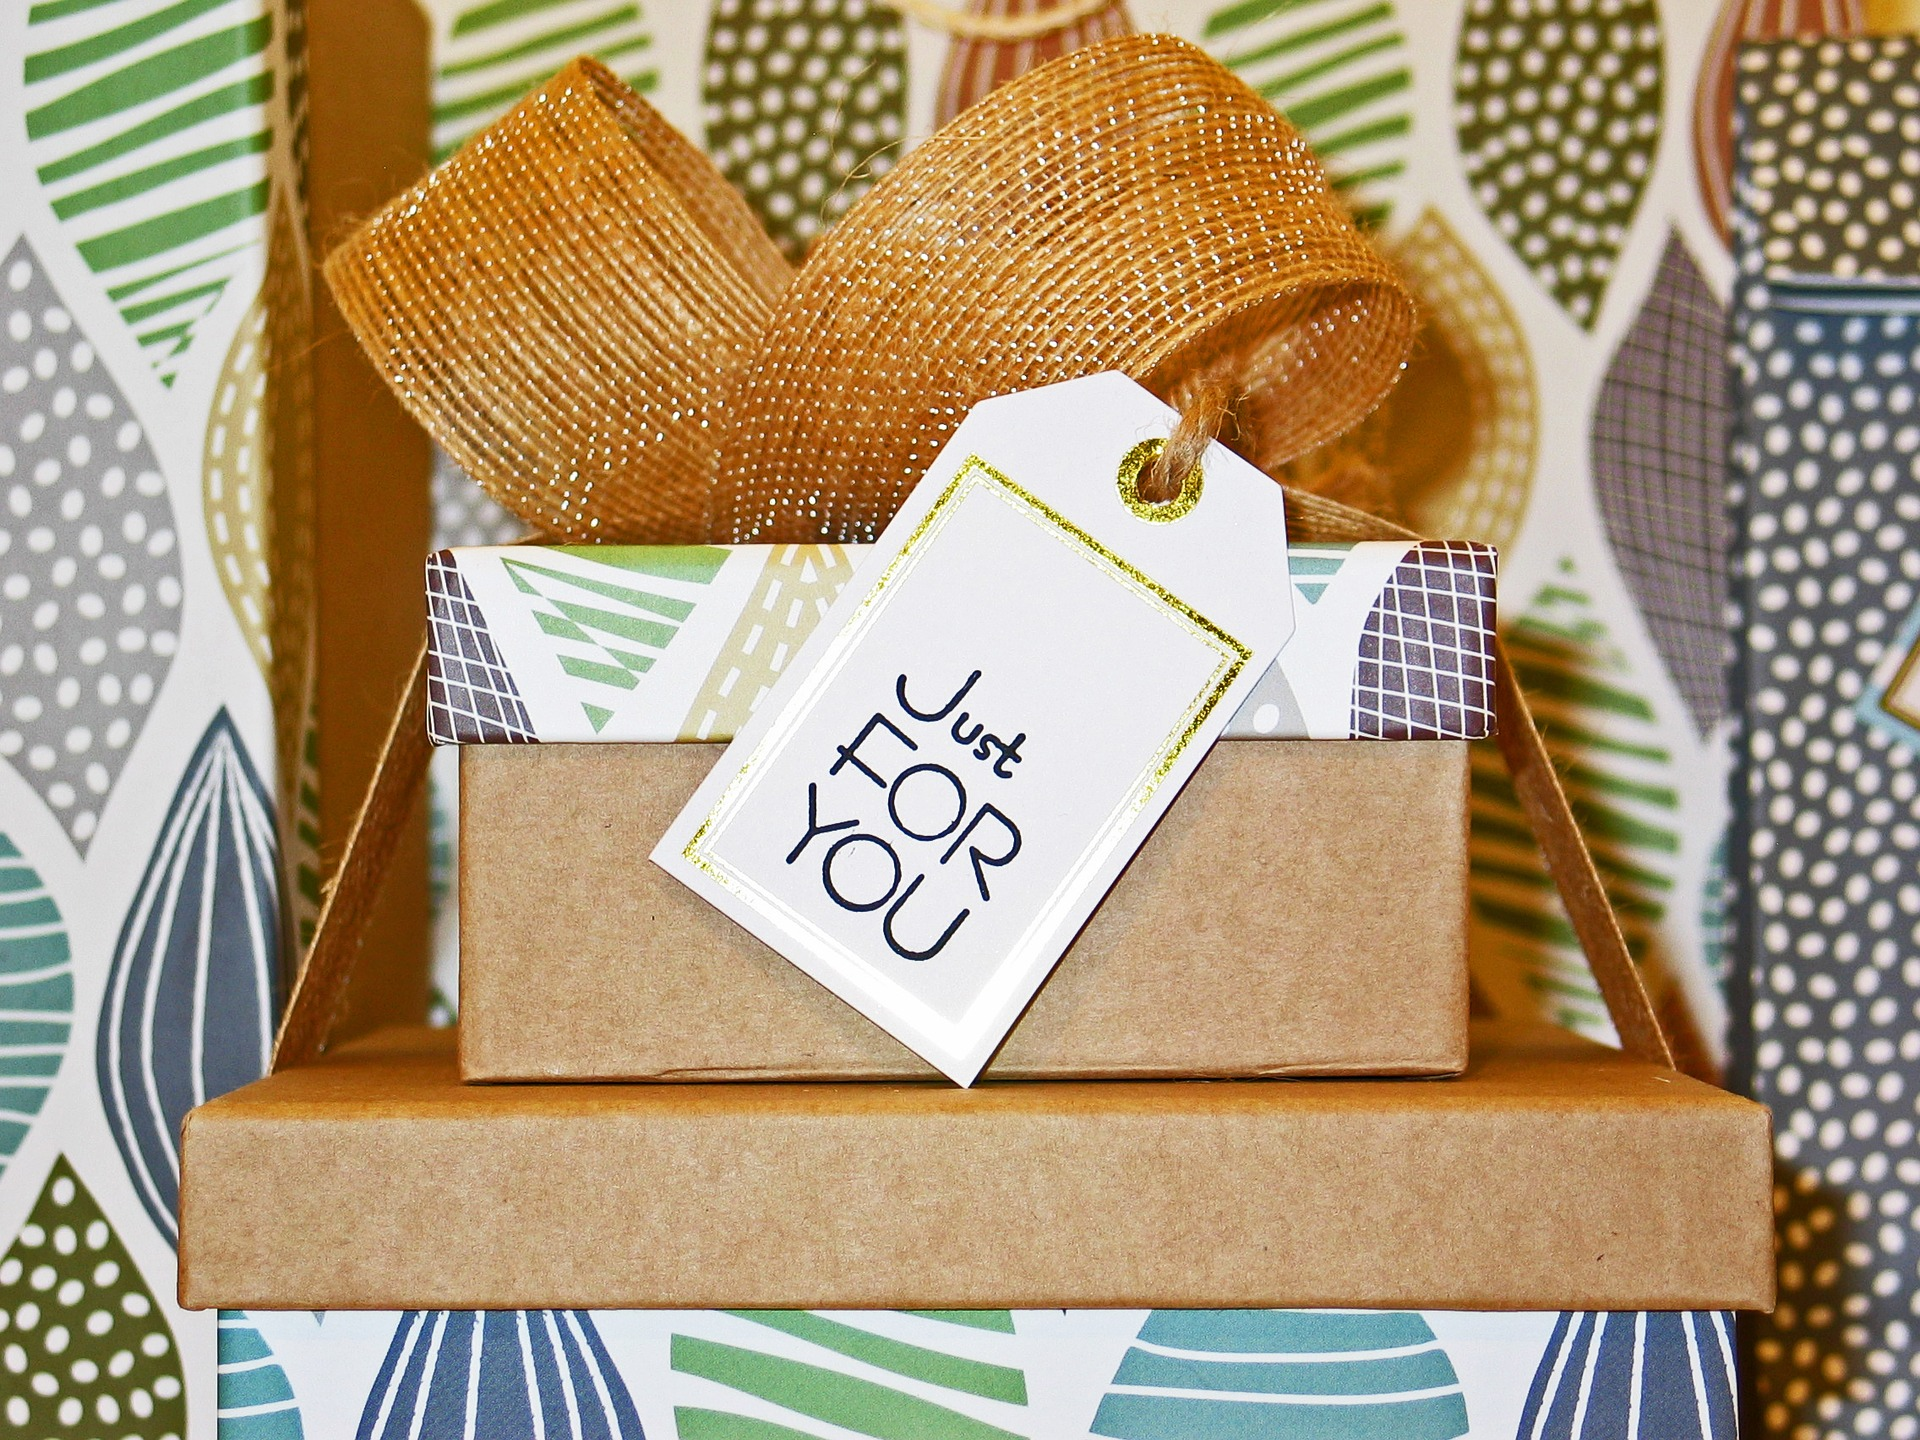 5 Personalized Gifts You Should Consider